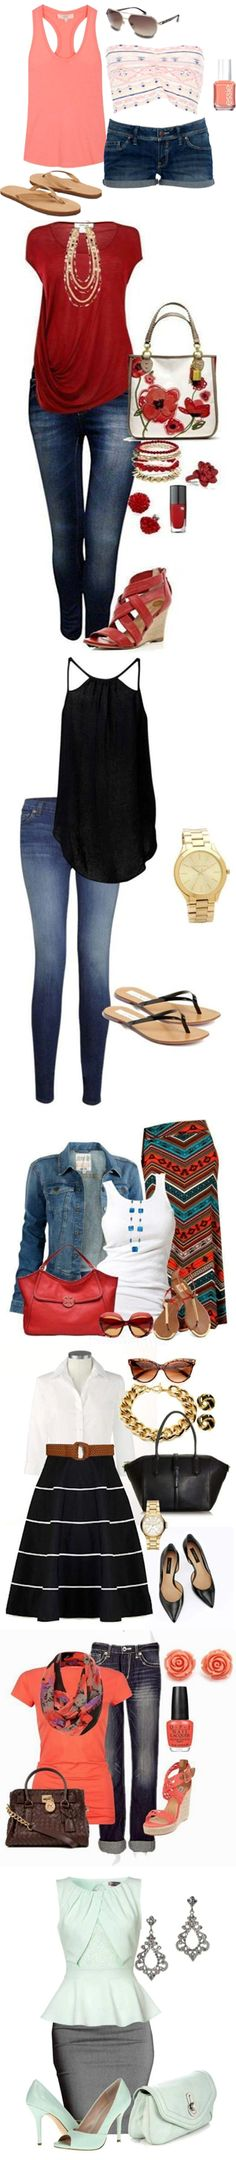 Classy Outfit Ideas Classy Outfits, Outfit Ideas, Fashion Outfits, Polyvore, Image, Elegant Outfit